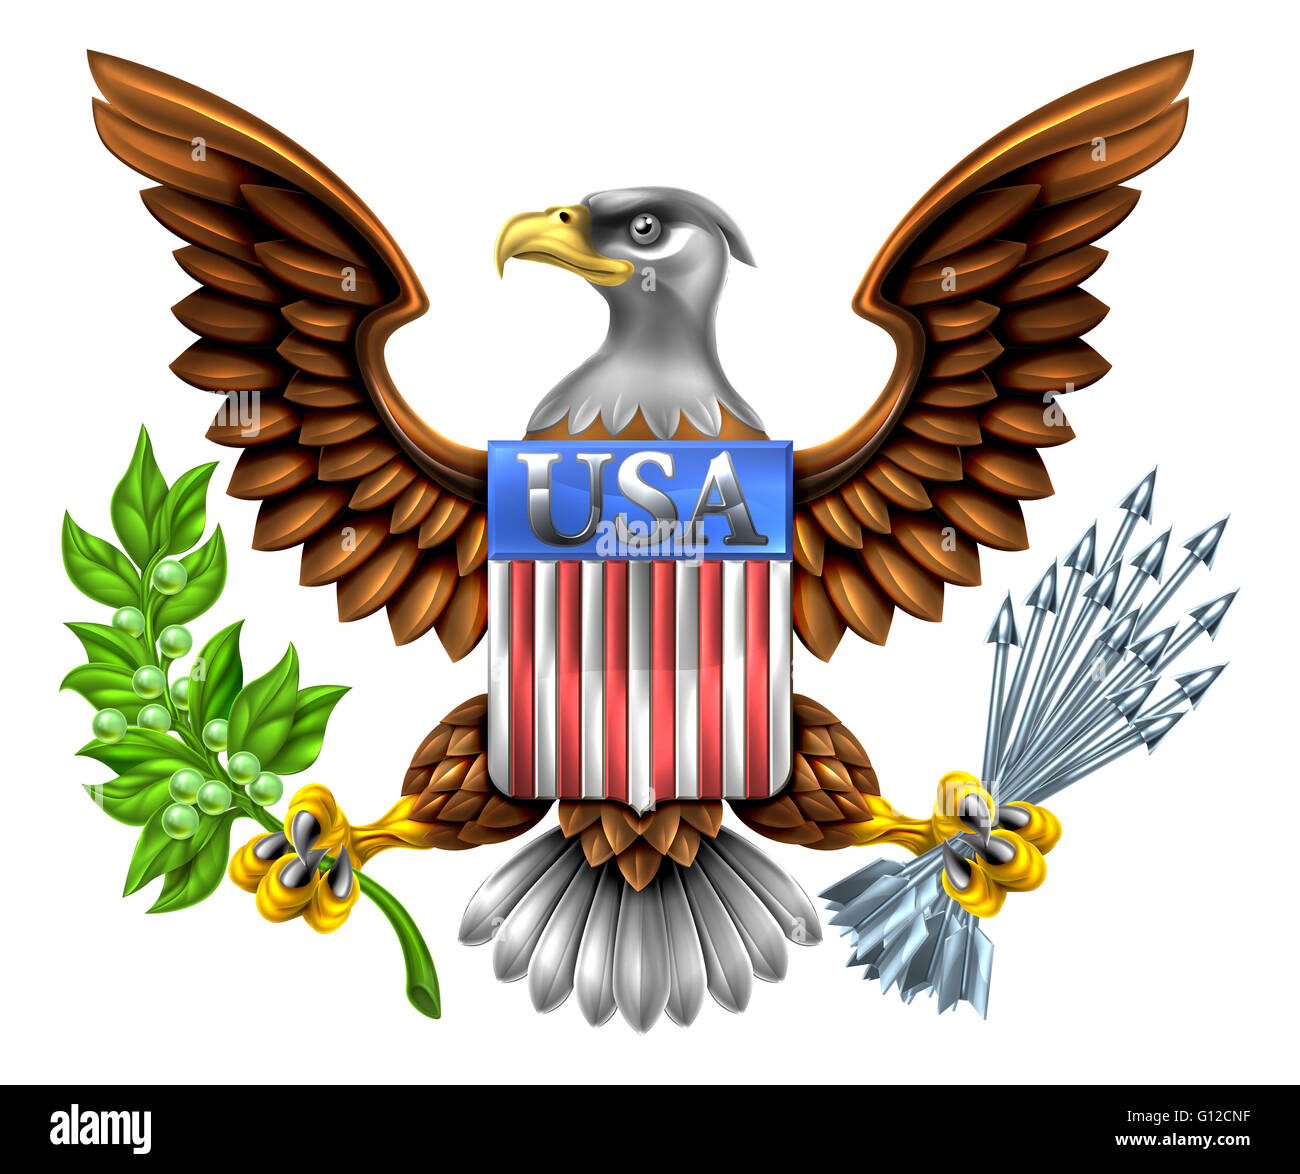 American Eagle Design With Bald Eagle Like That Found On The Great